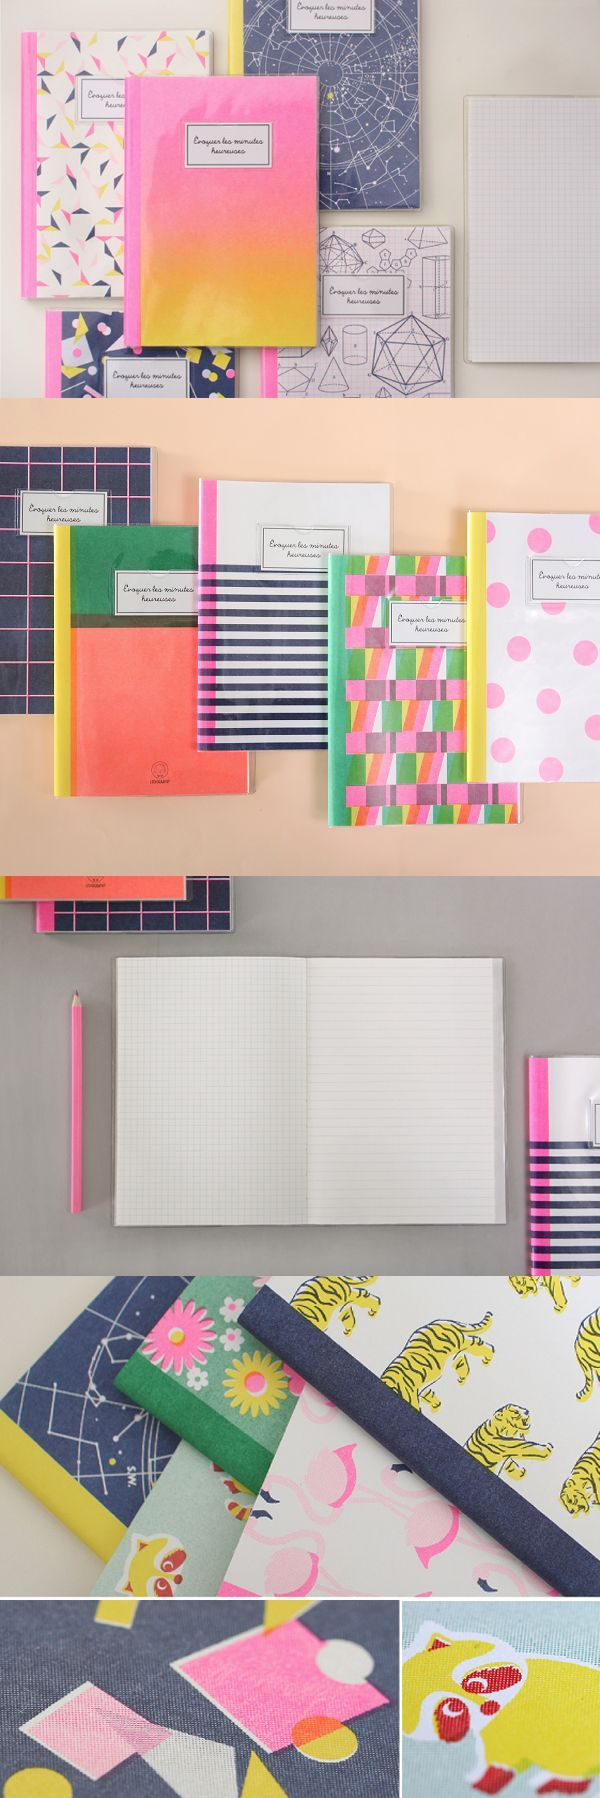 Upgrade your school supplies! This cute notebook has 20 different styles of vibrant patterns to choose from & it's printed with the unique screen-printing technique for a fun vibe~ The front of each page is lined & the back side is gridded so you have even more variety! To top it off, it comes with a protective PVC cover too! This definitely isn't your average composition notebook.  Check it out! ^_^